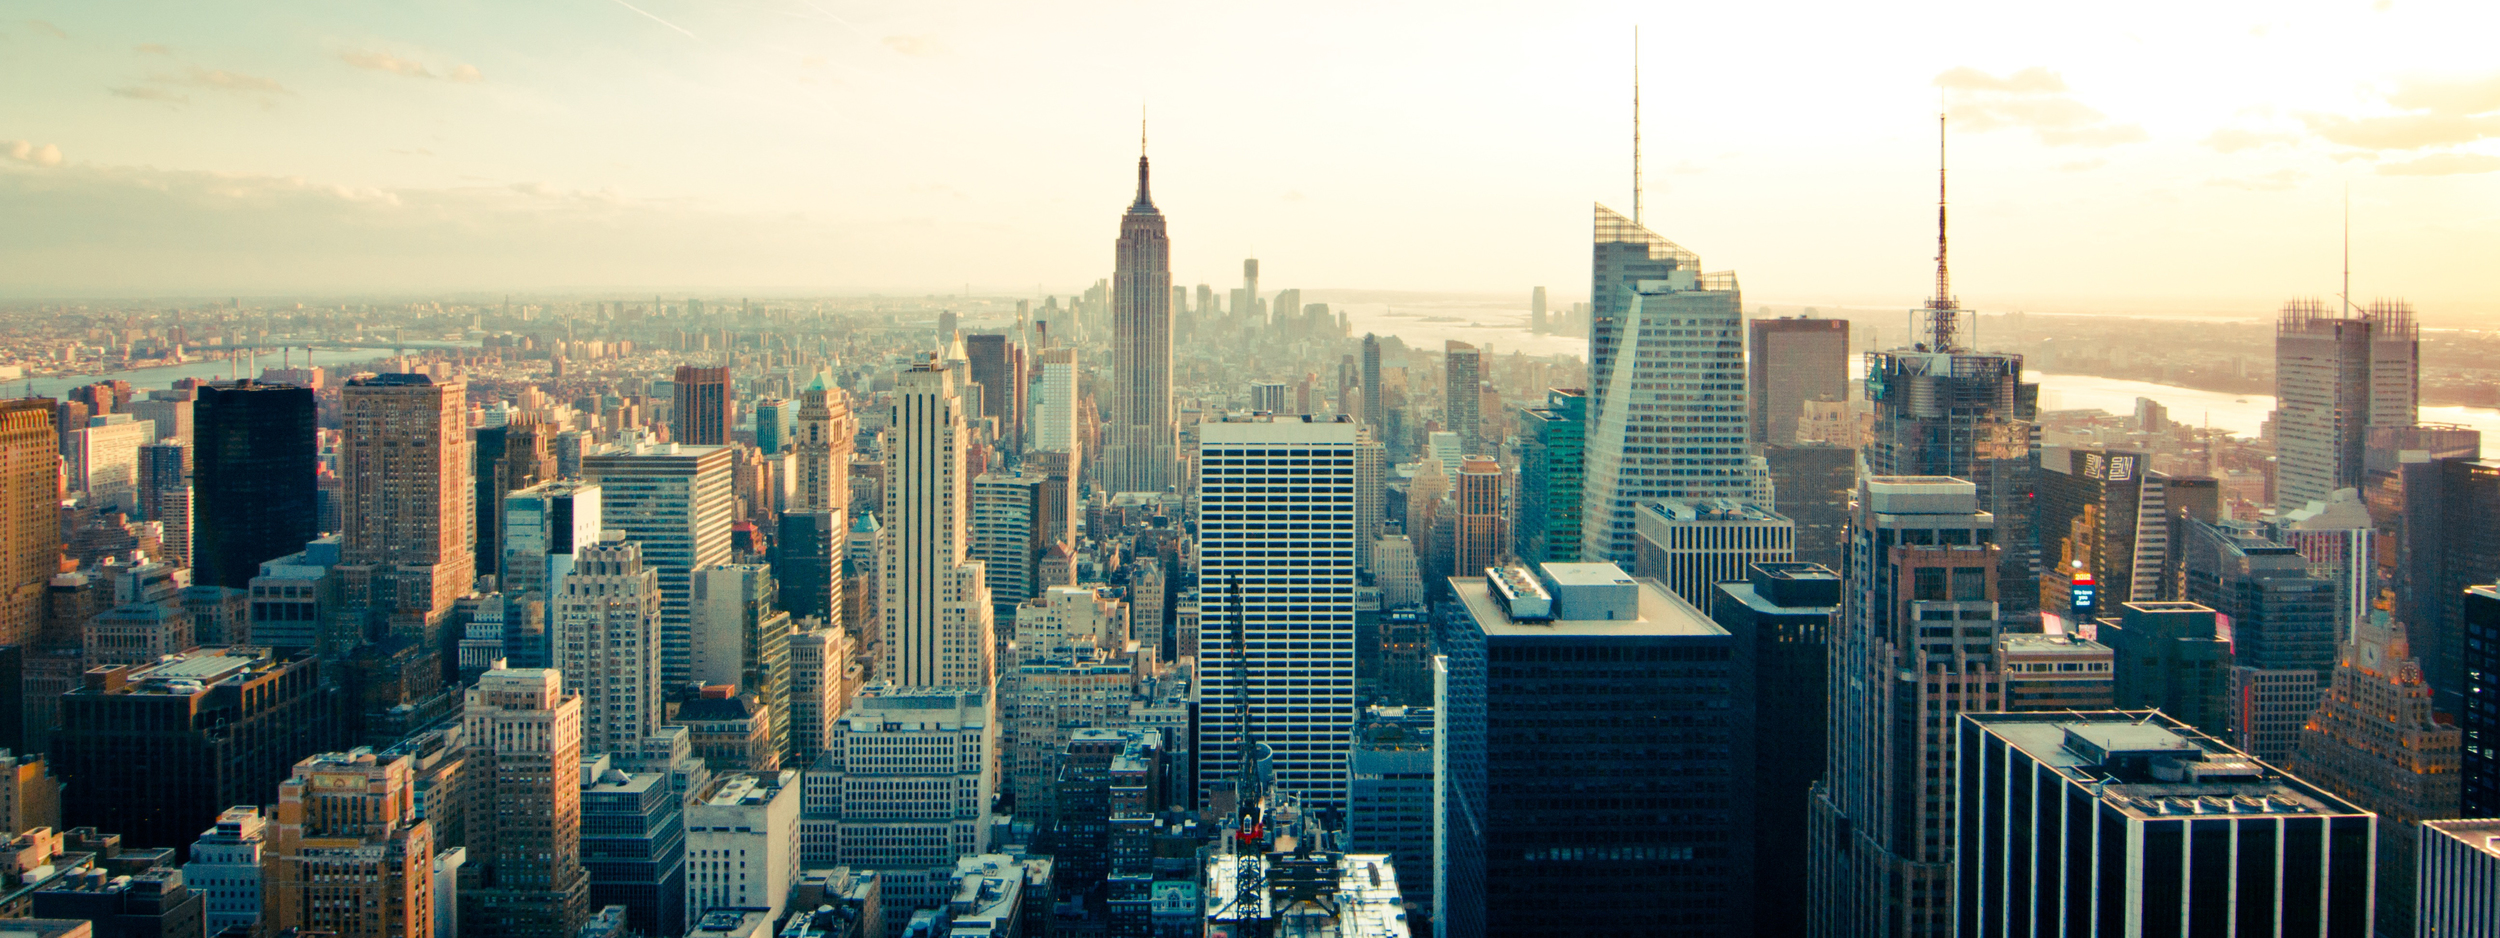 skyline-buildings-new-york-skyscrapers.jpg